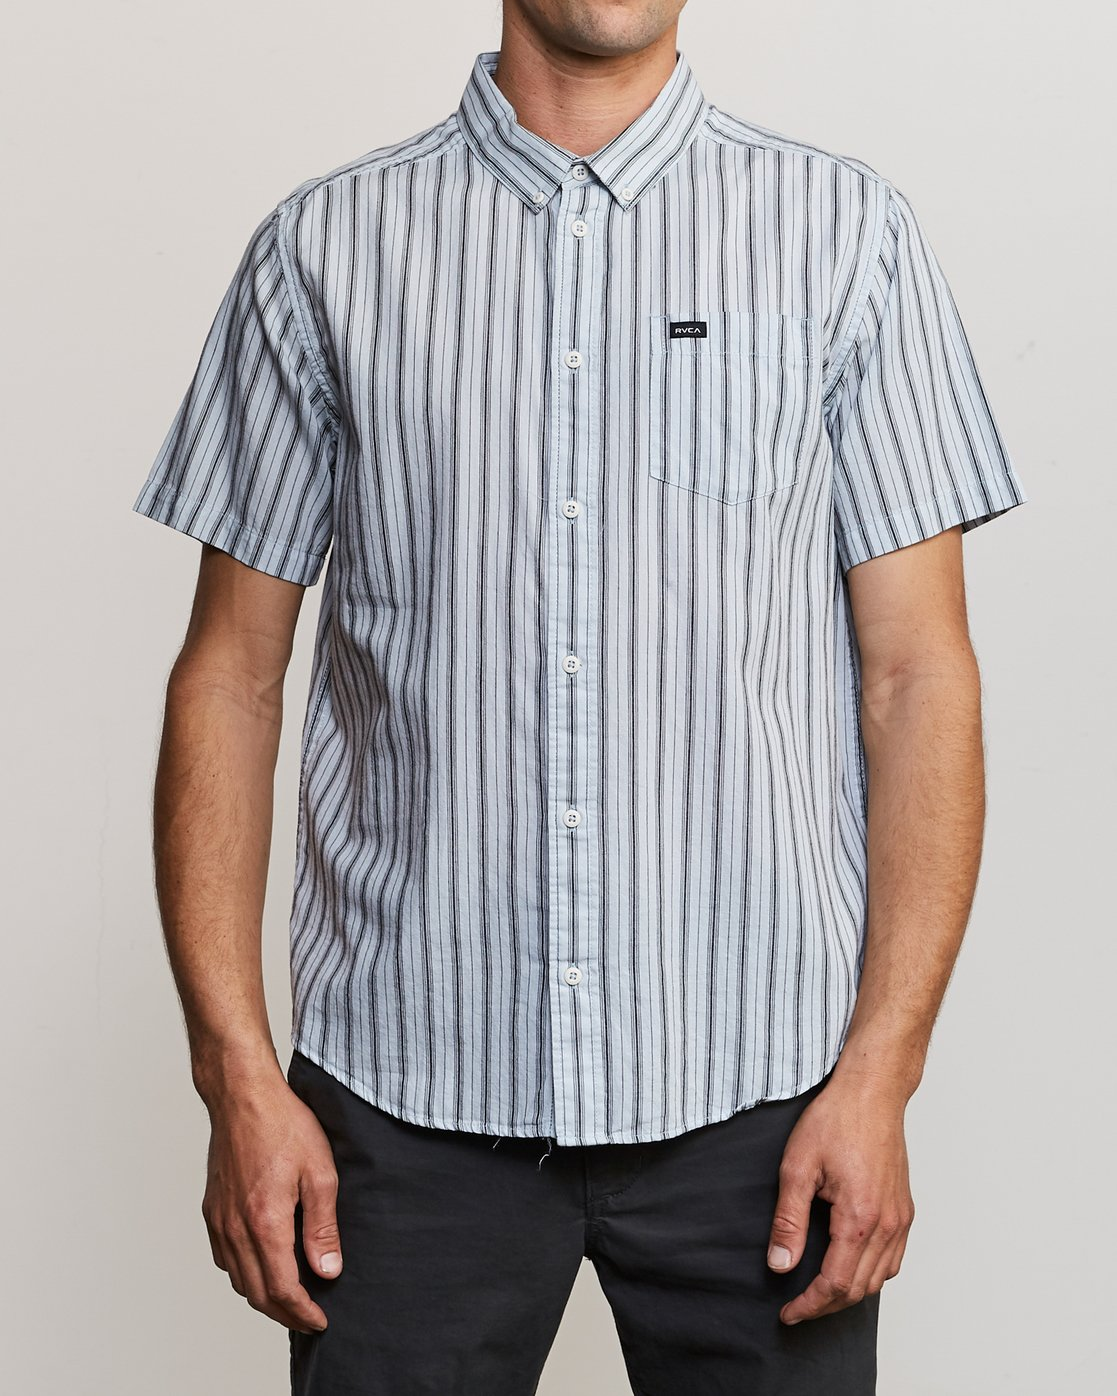 0 Shuffle Stripe Button-Up Shirt White M564URAS RVCA